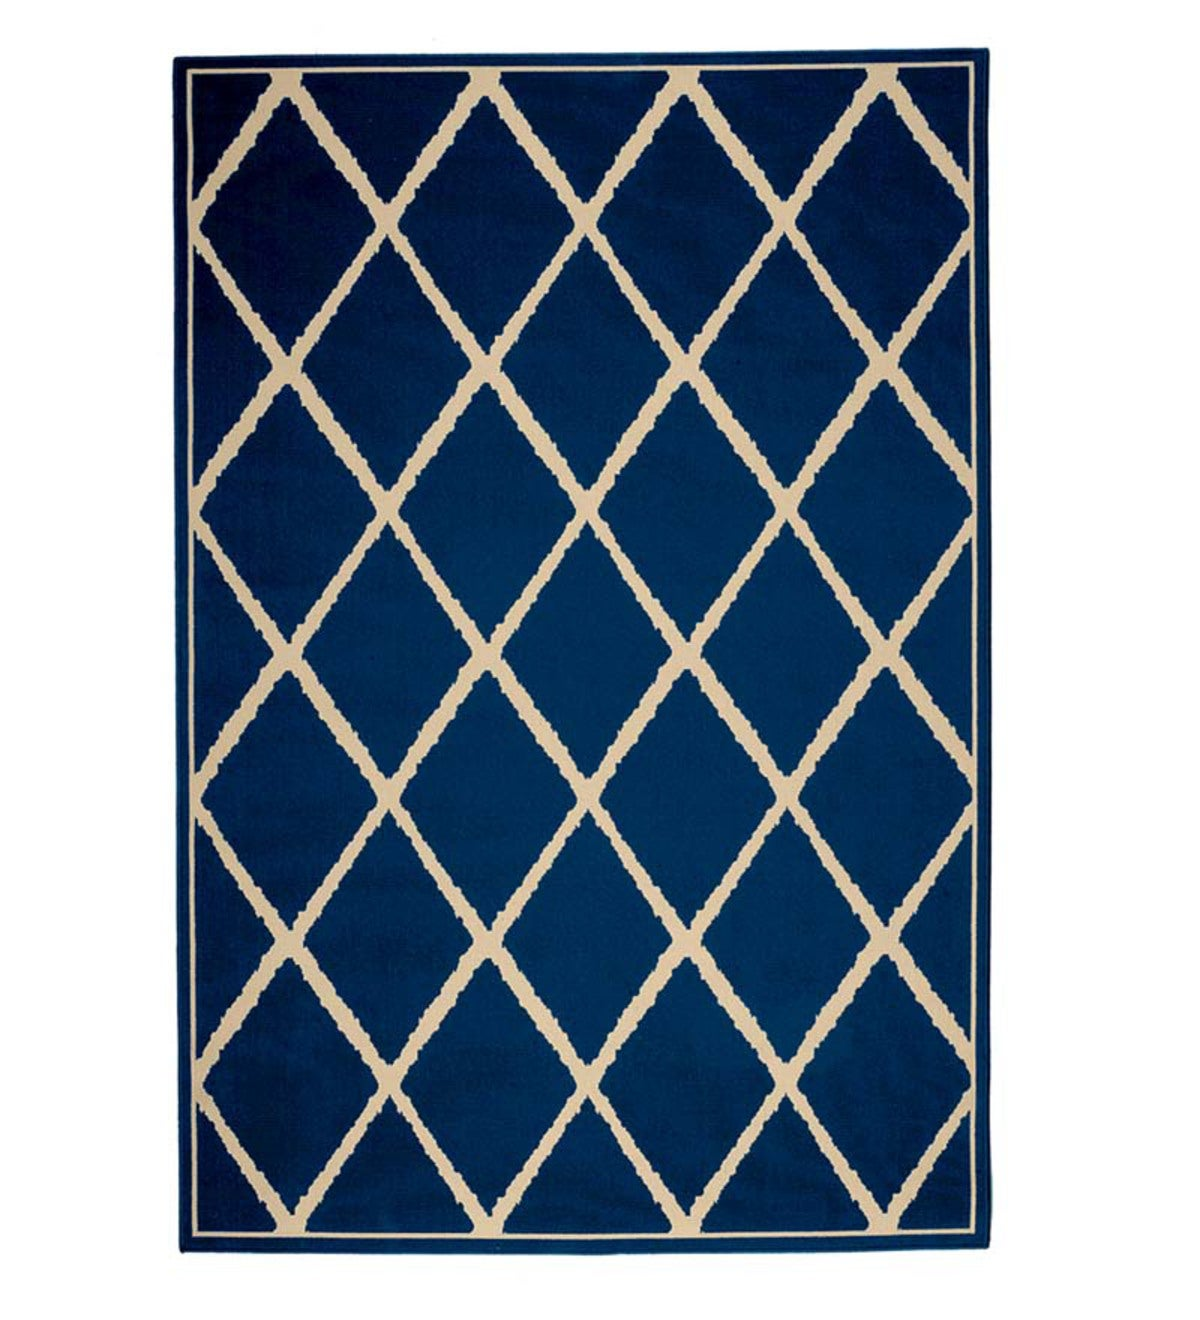 "Lattice Surry Rug, 2'5""x 4'5"" - Dark Blue"